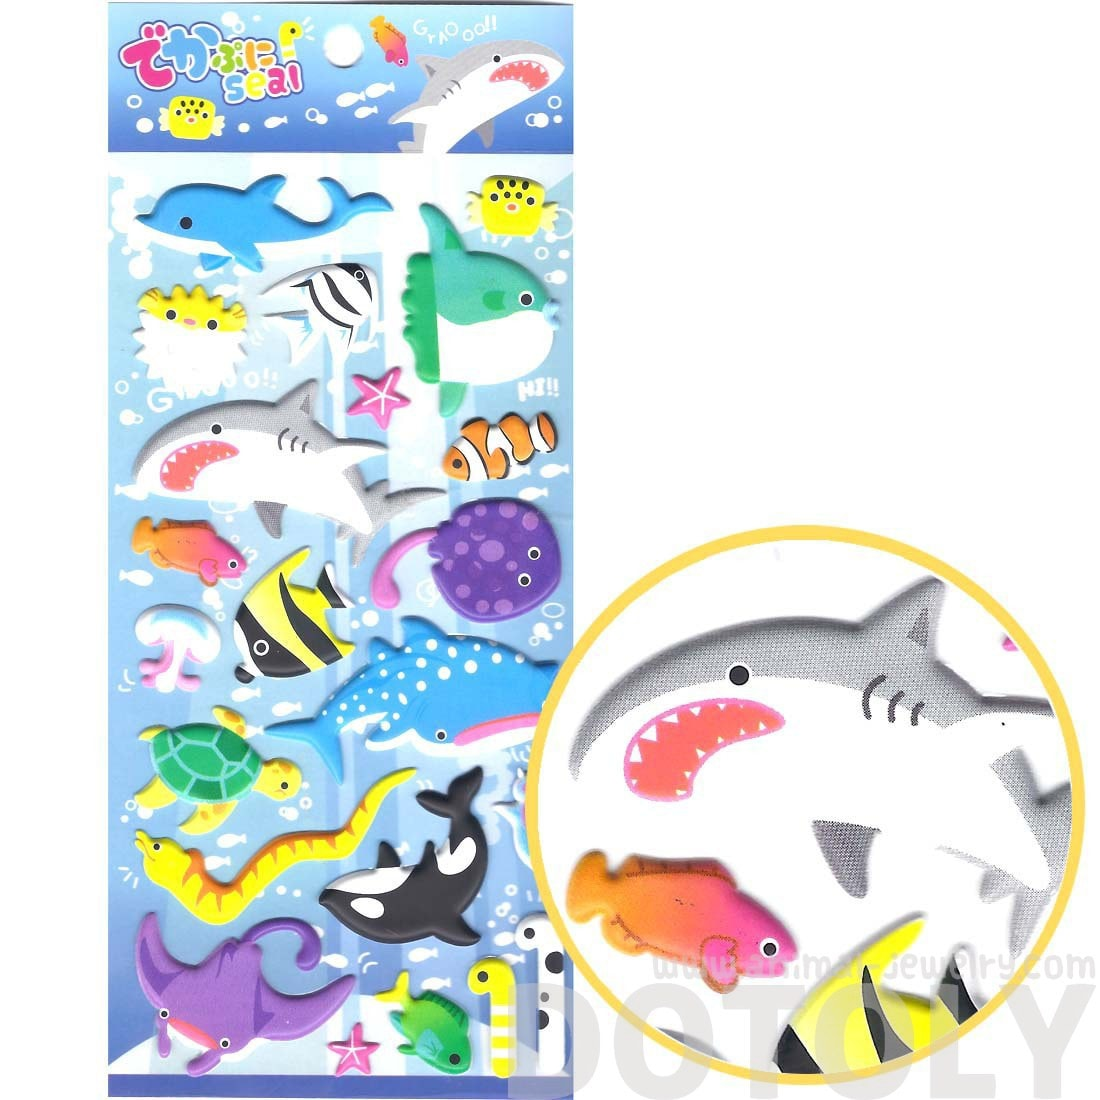 Large Sea Creatures Themed Shark Stingrays Fish Shaped Puffy Stickers